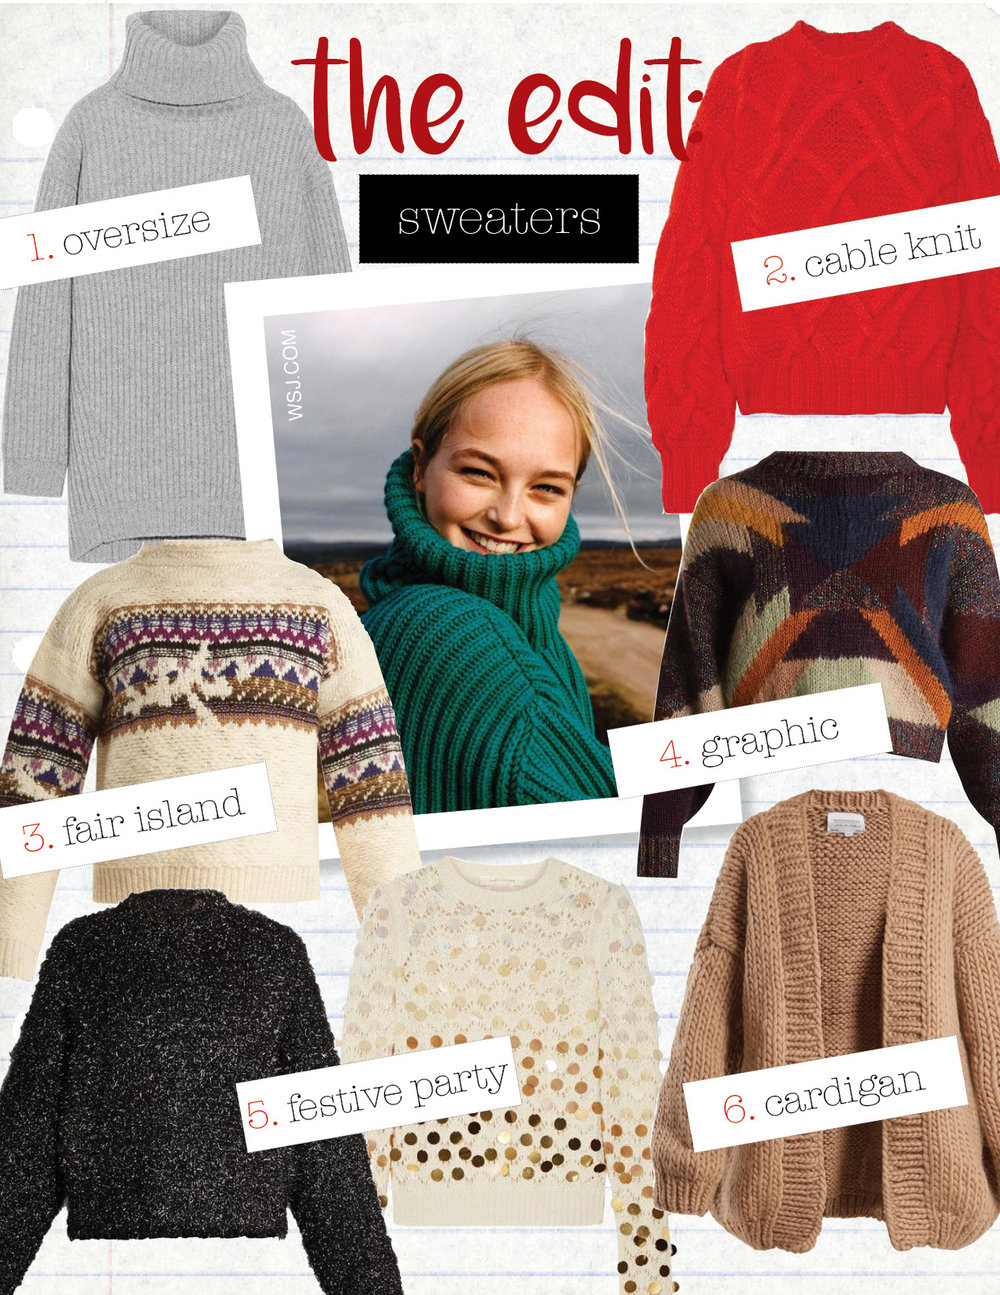 1. acne studios disa oversized ribbed wool turtleneck sweater, $329,  net-a-porter.com  2. ulla johnson pilar cable-knit wool sweater, $795,  net-a-porter.com  3. isabel marant etoile fair-isle sweater, $437,  matchesfashion.com  4. isabel marant cadelia cropped sweater, $909,  matchesfashion.com  5. marc jacobs seqiuned sweater, $346,  net-a-porter.com  6. i love mr. mittens chunky cardigan, $539,  matchesfashion.com